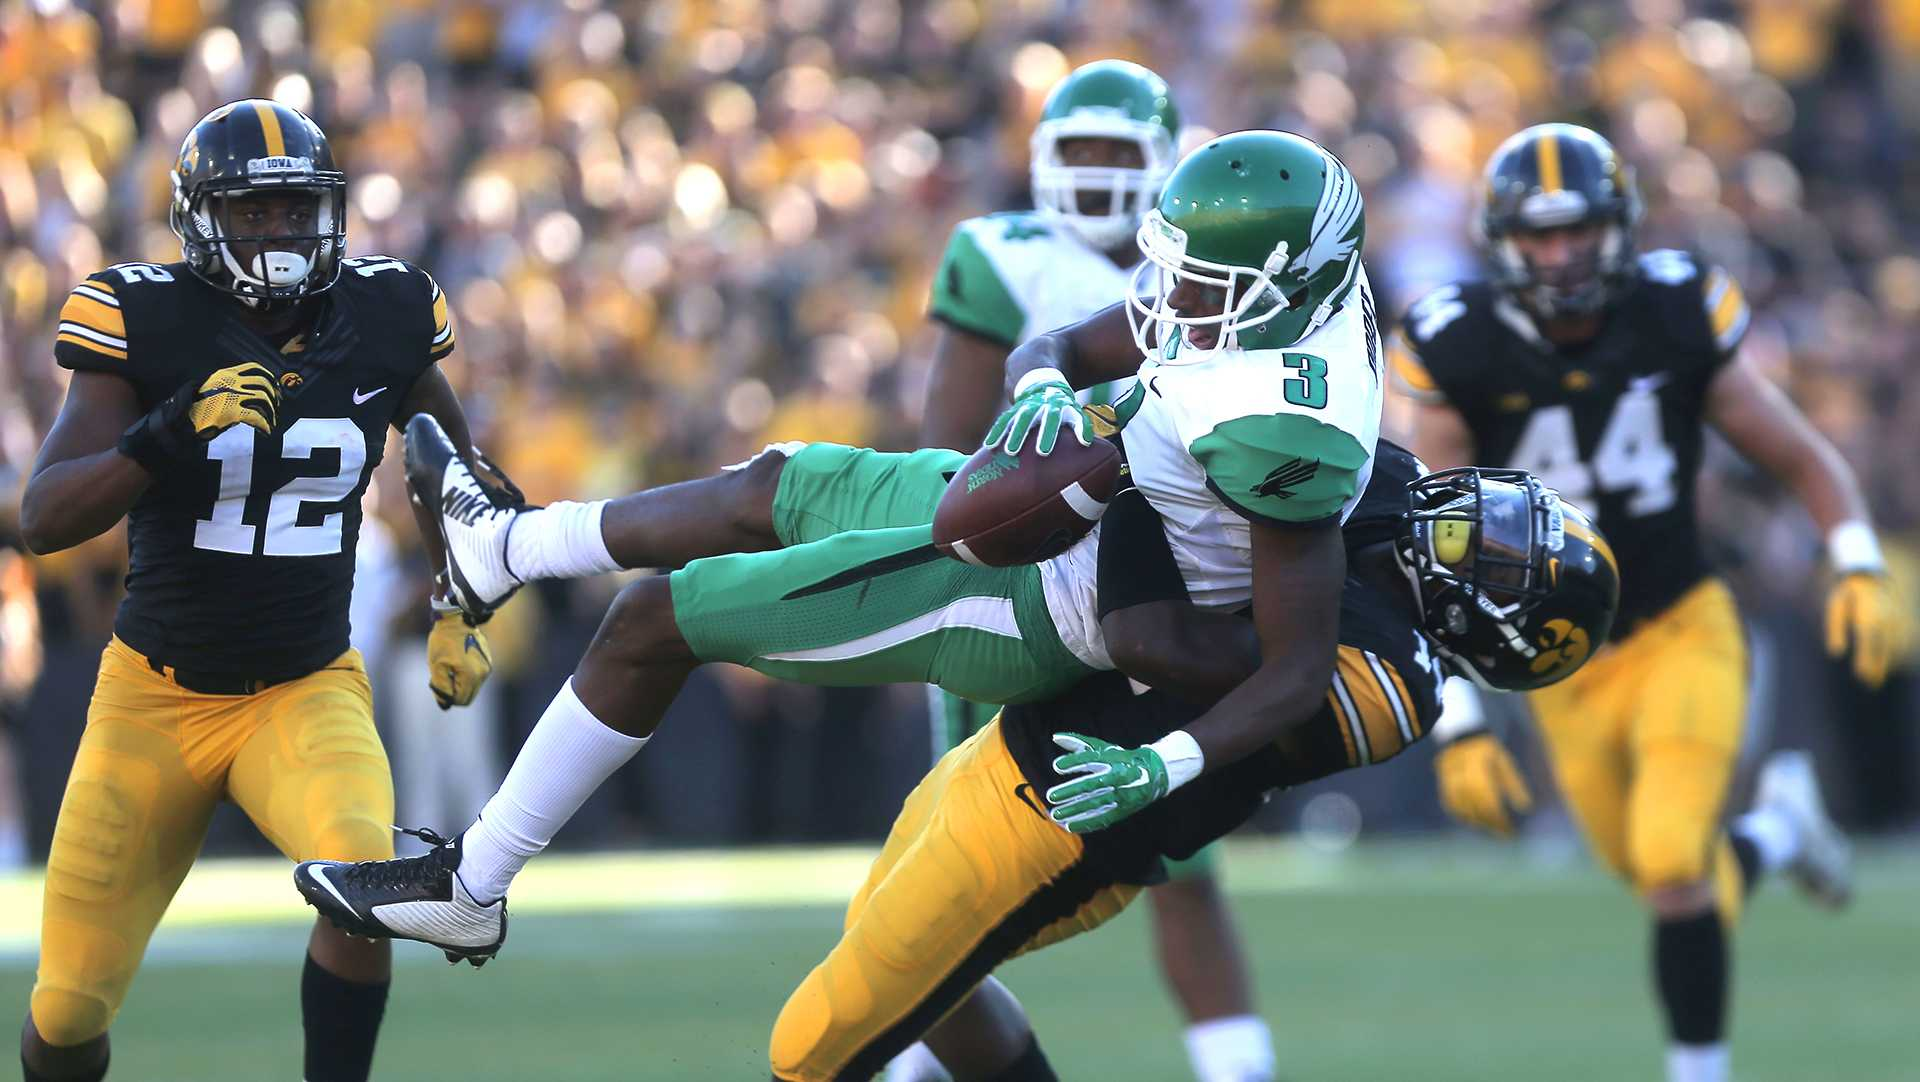 Iowa defensive back Desmond King throws North Texas wide receiver Tee Goree down to the ground during the Iowa-North Texas game in Kinnick Stadium on Saturday, Sept. 26, 2015. The Hawkeyes defeated the Mean Green, 62-16. (The Daily Iowan/Margaret Kispert)